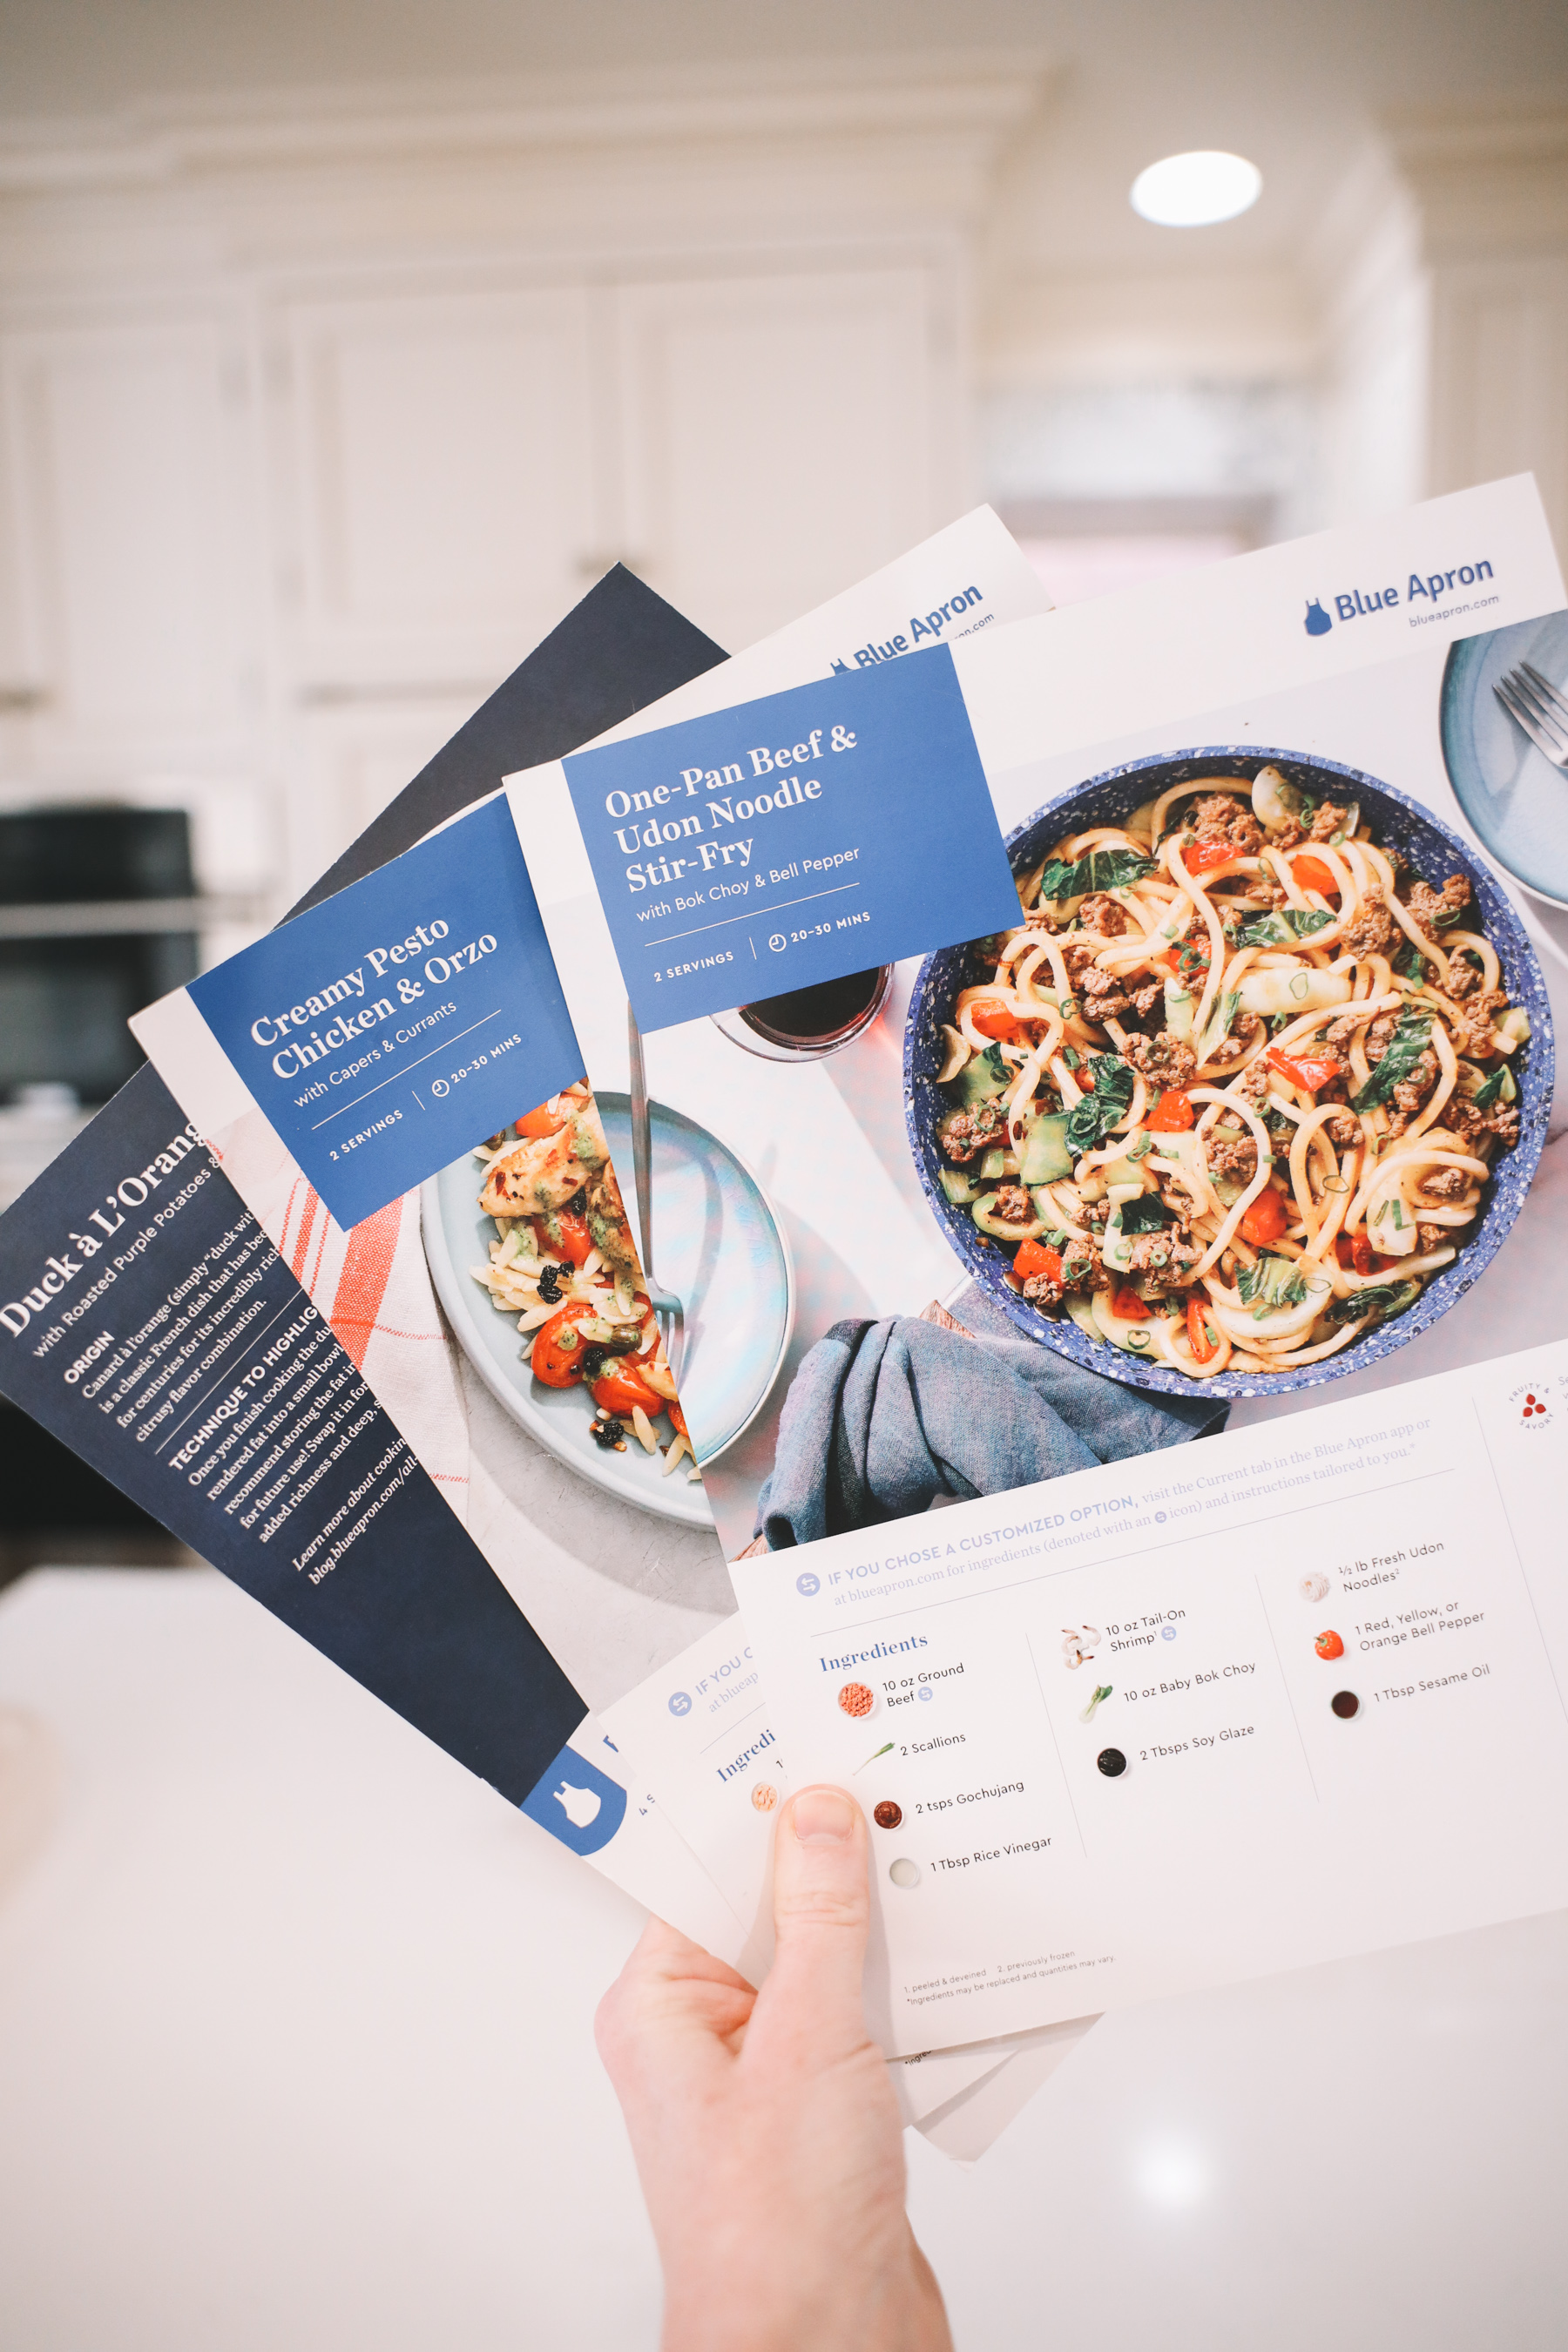 Kelly in the City + Blue Apron Offer recipes